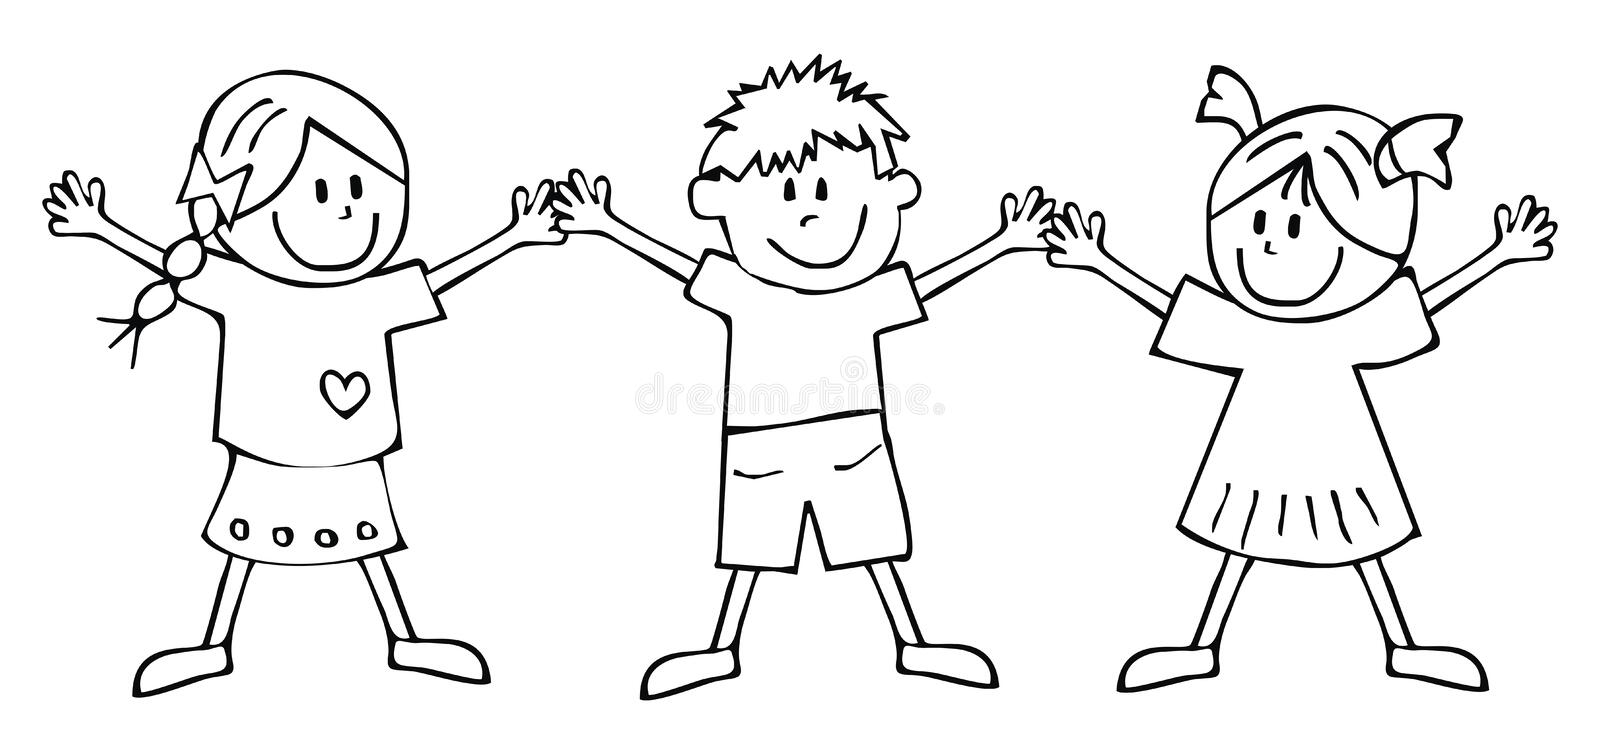 Two girls and boy, coloring book, vector icon royalty free illustration